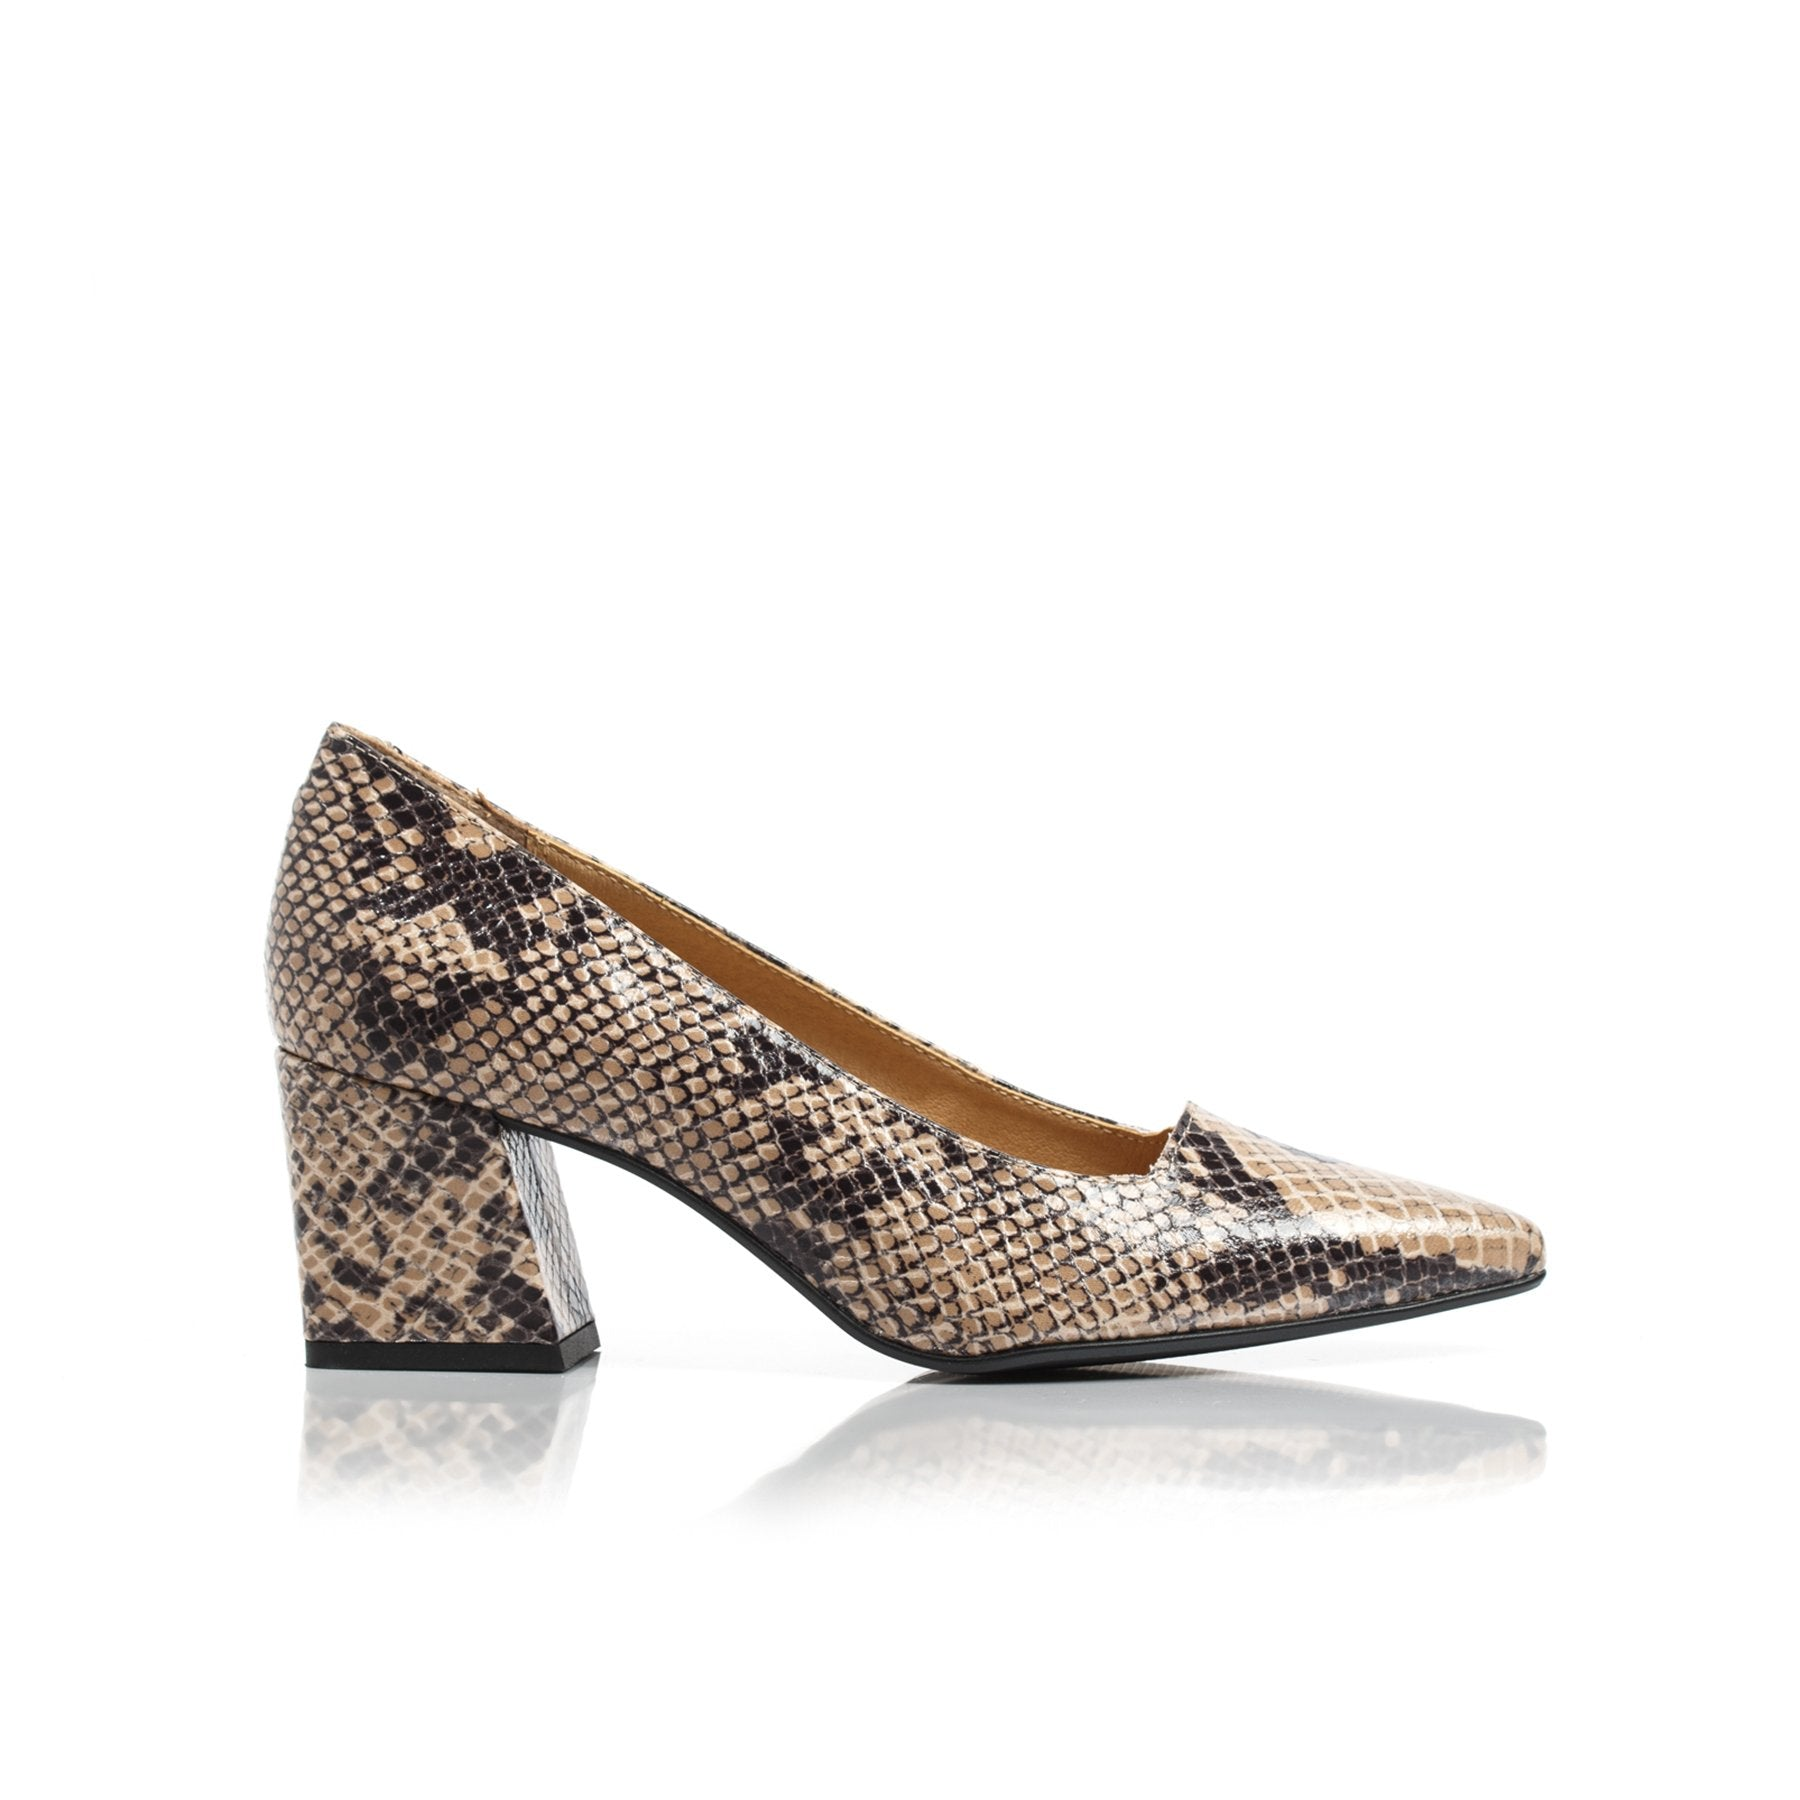 Nadia Tan Snake Leather Pumps